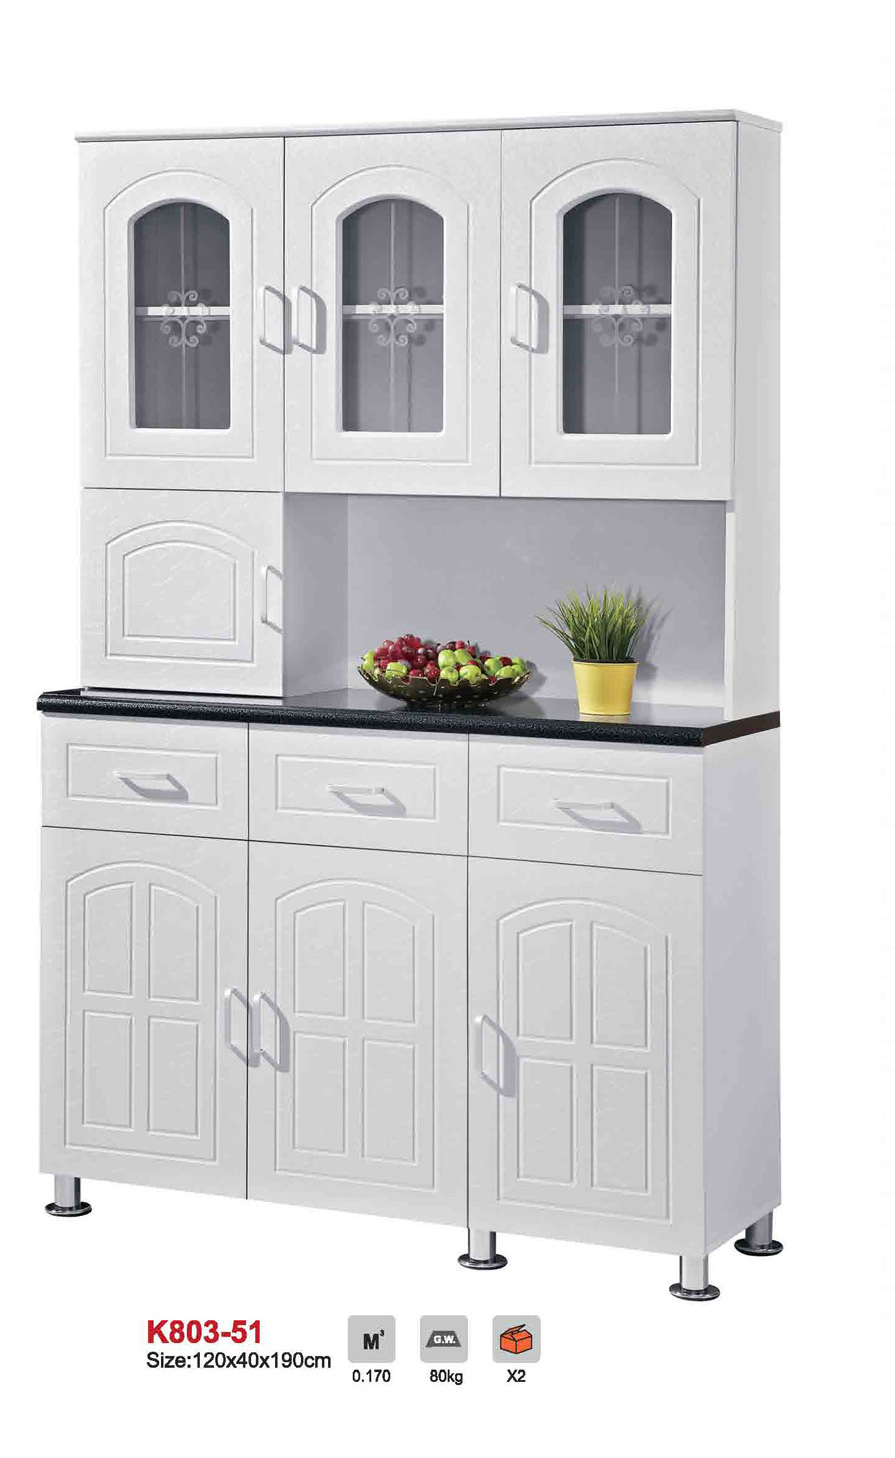 Readymade cabinets mf cabinets for Cheap ready made kitchen cabinets